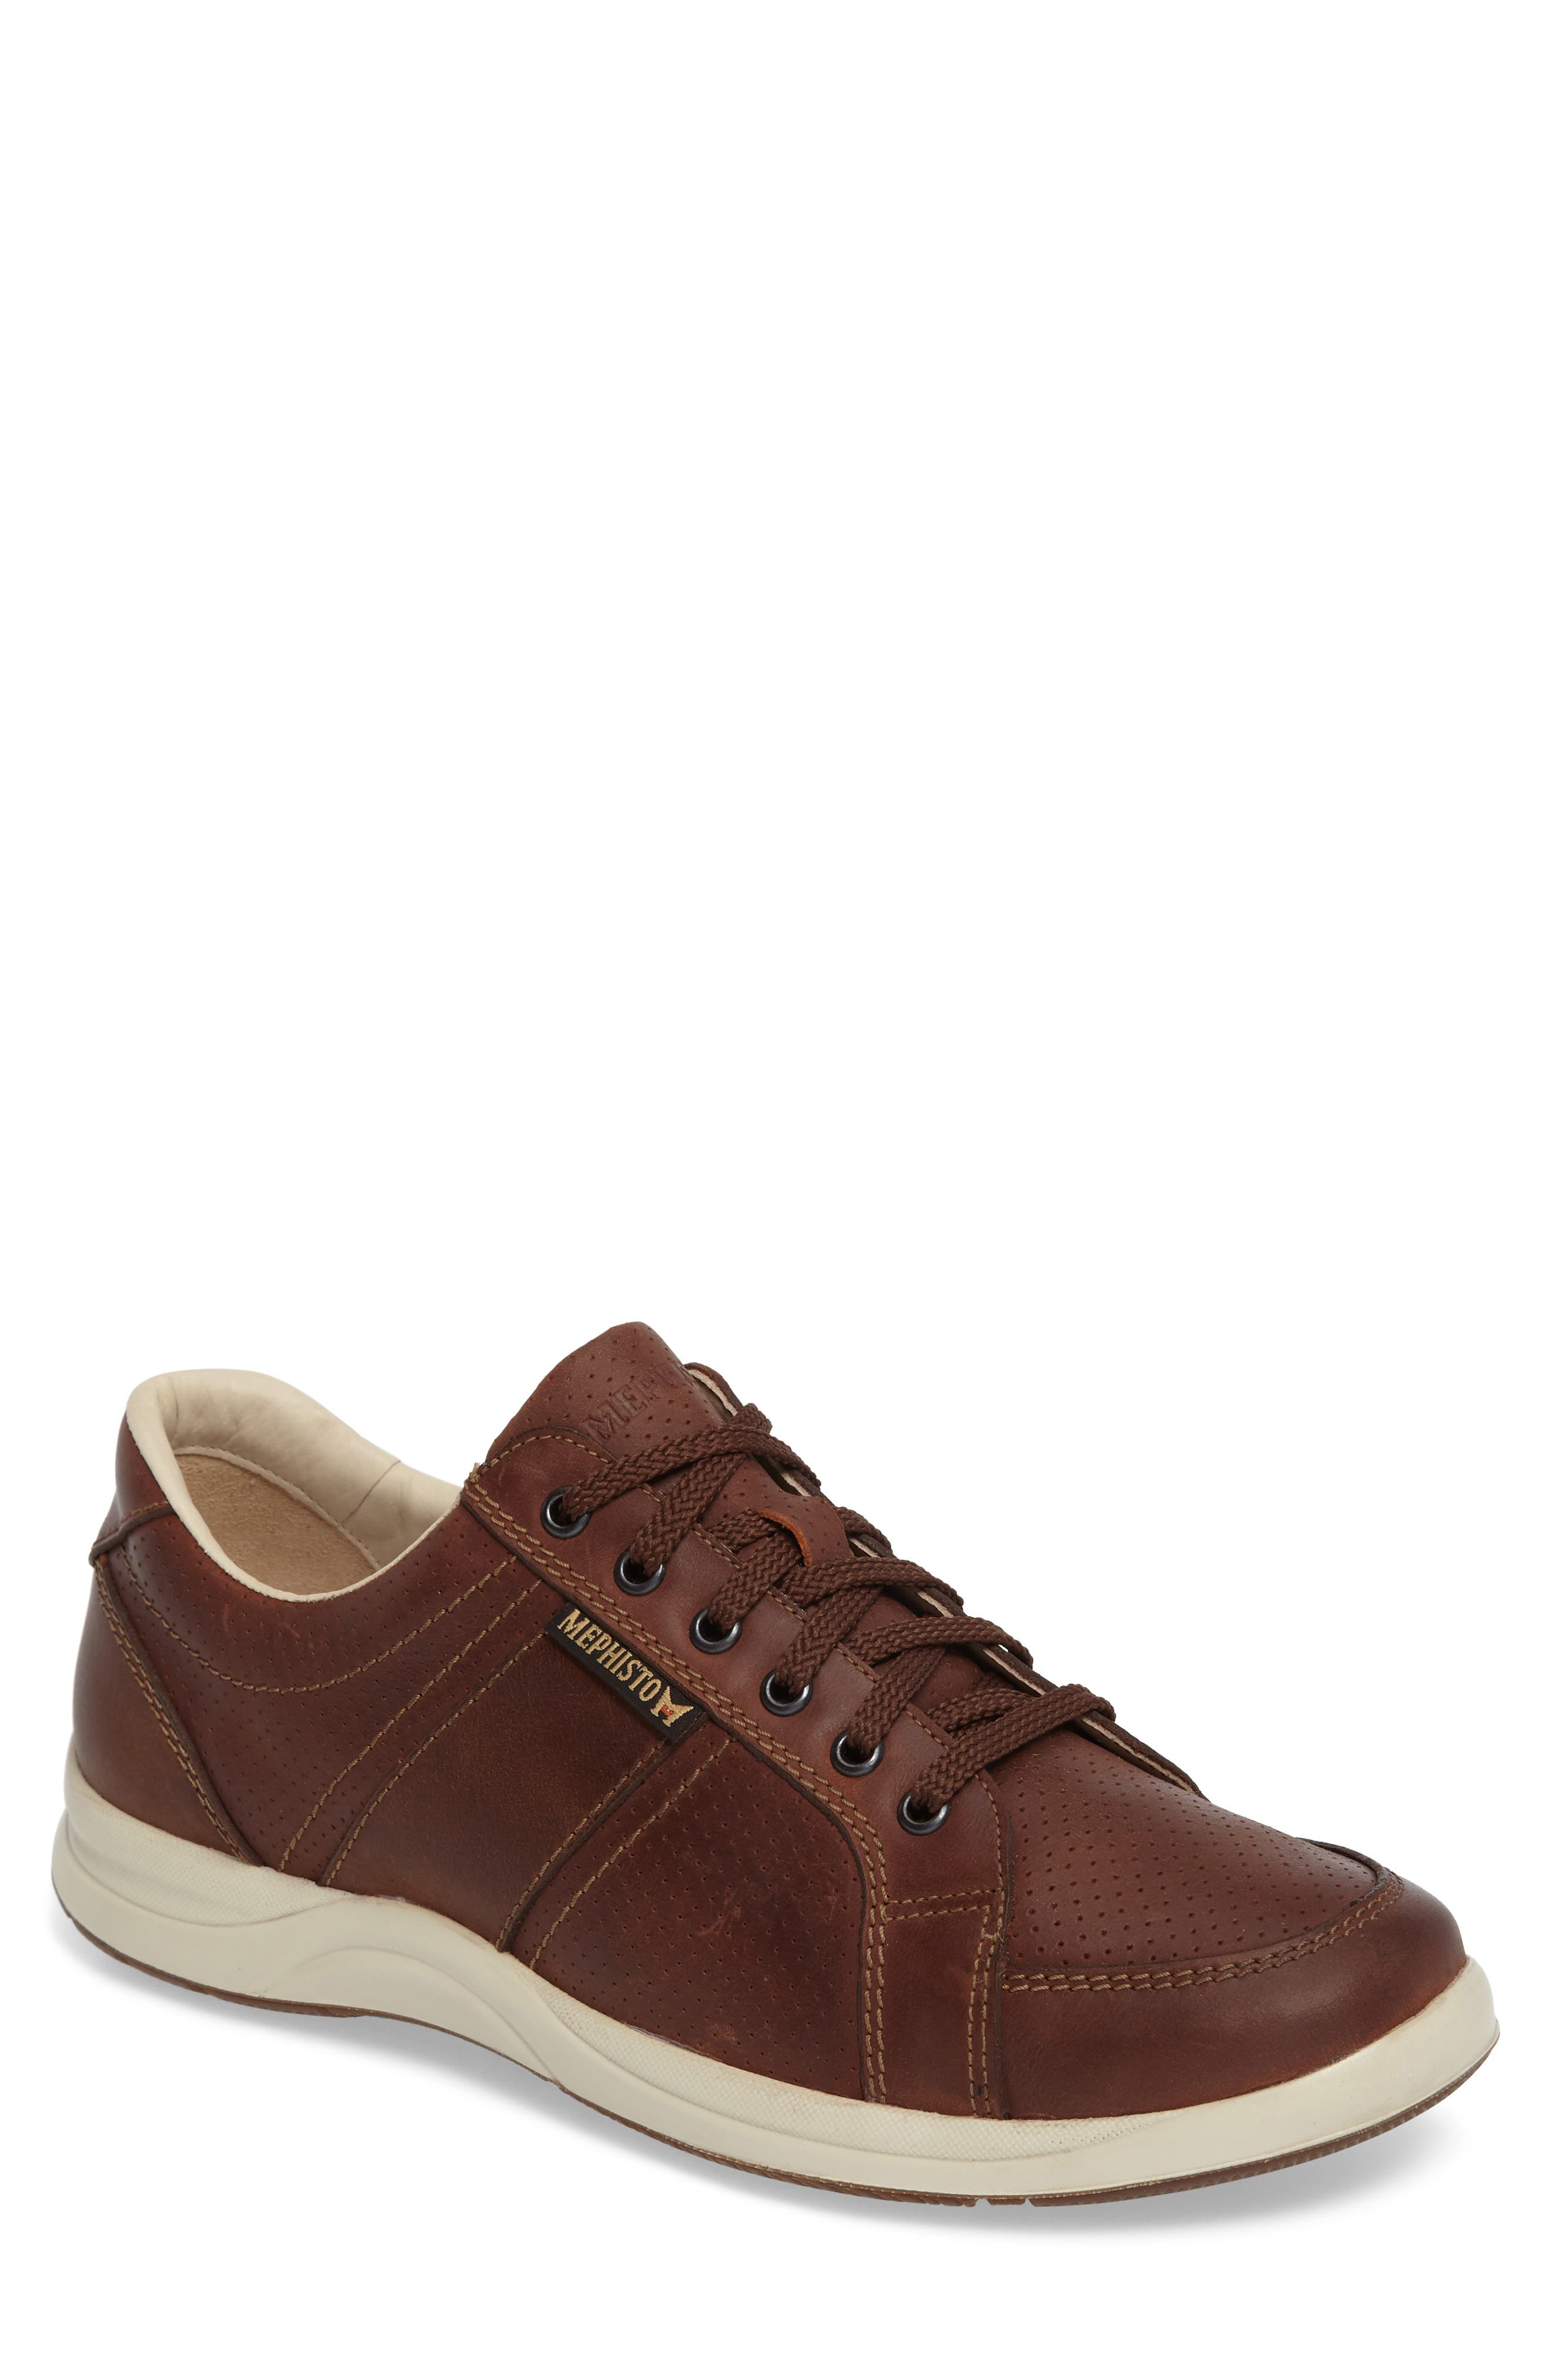 'Hero' Perforated Sneaker,                         Main,                         color, Chestnut Nubuck Leather